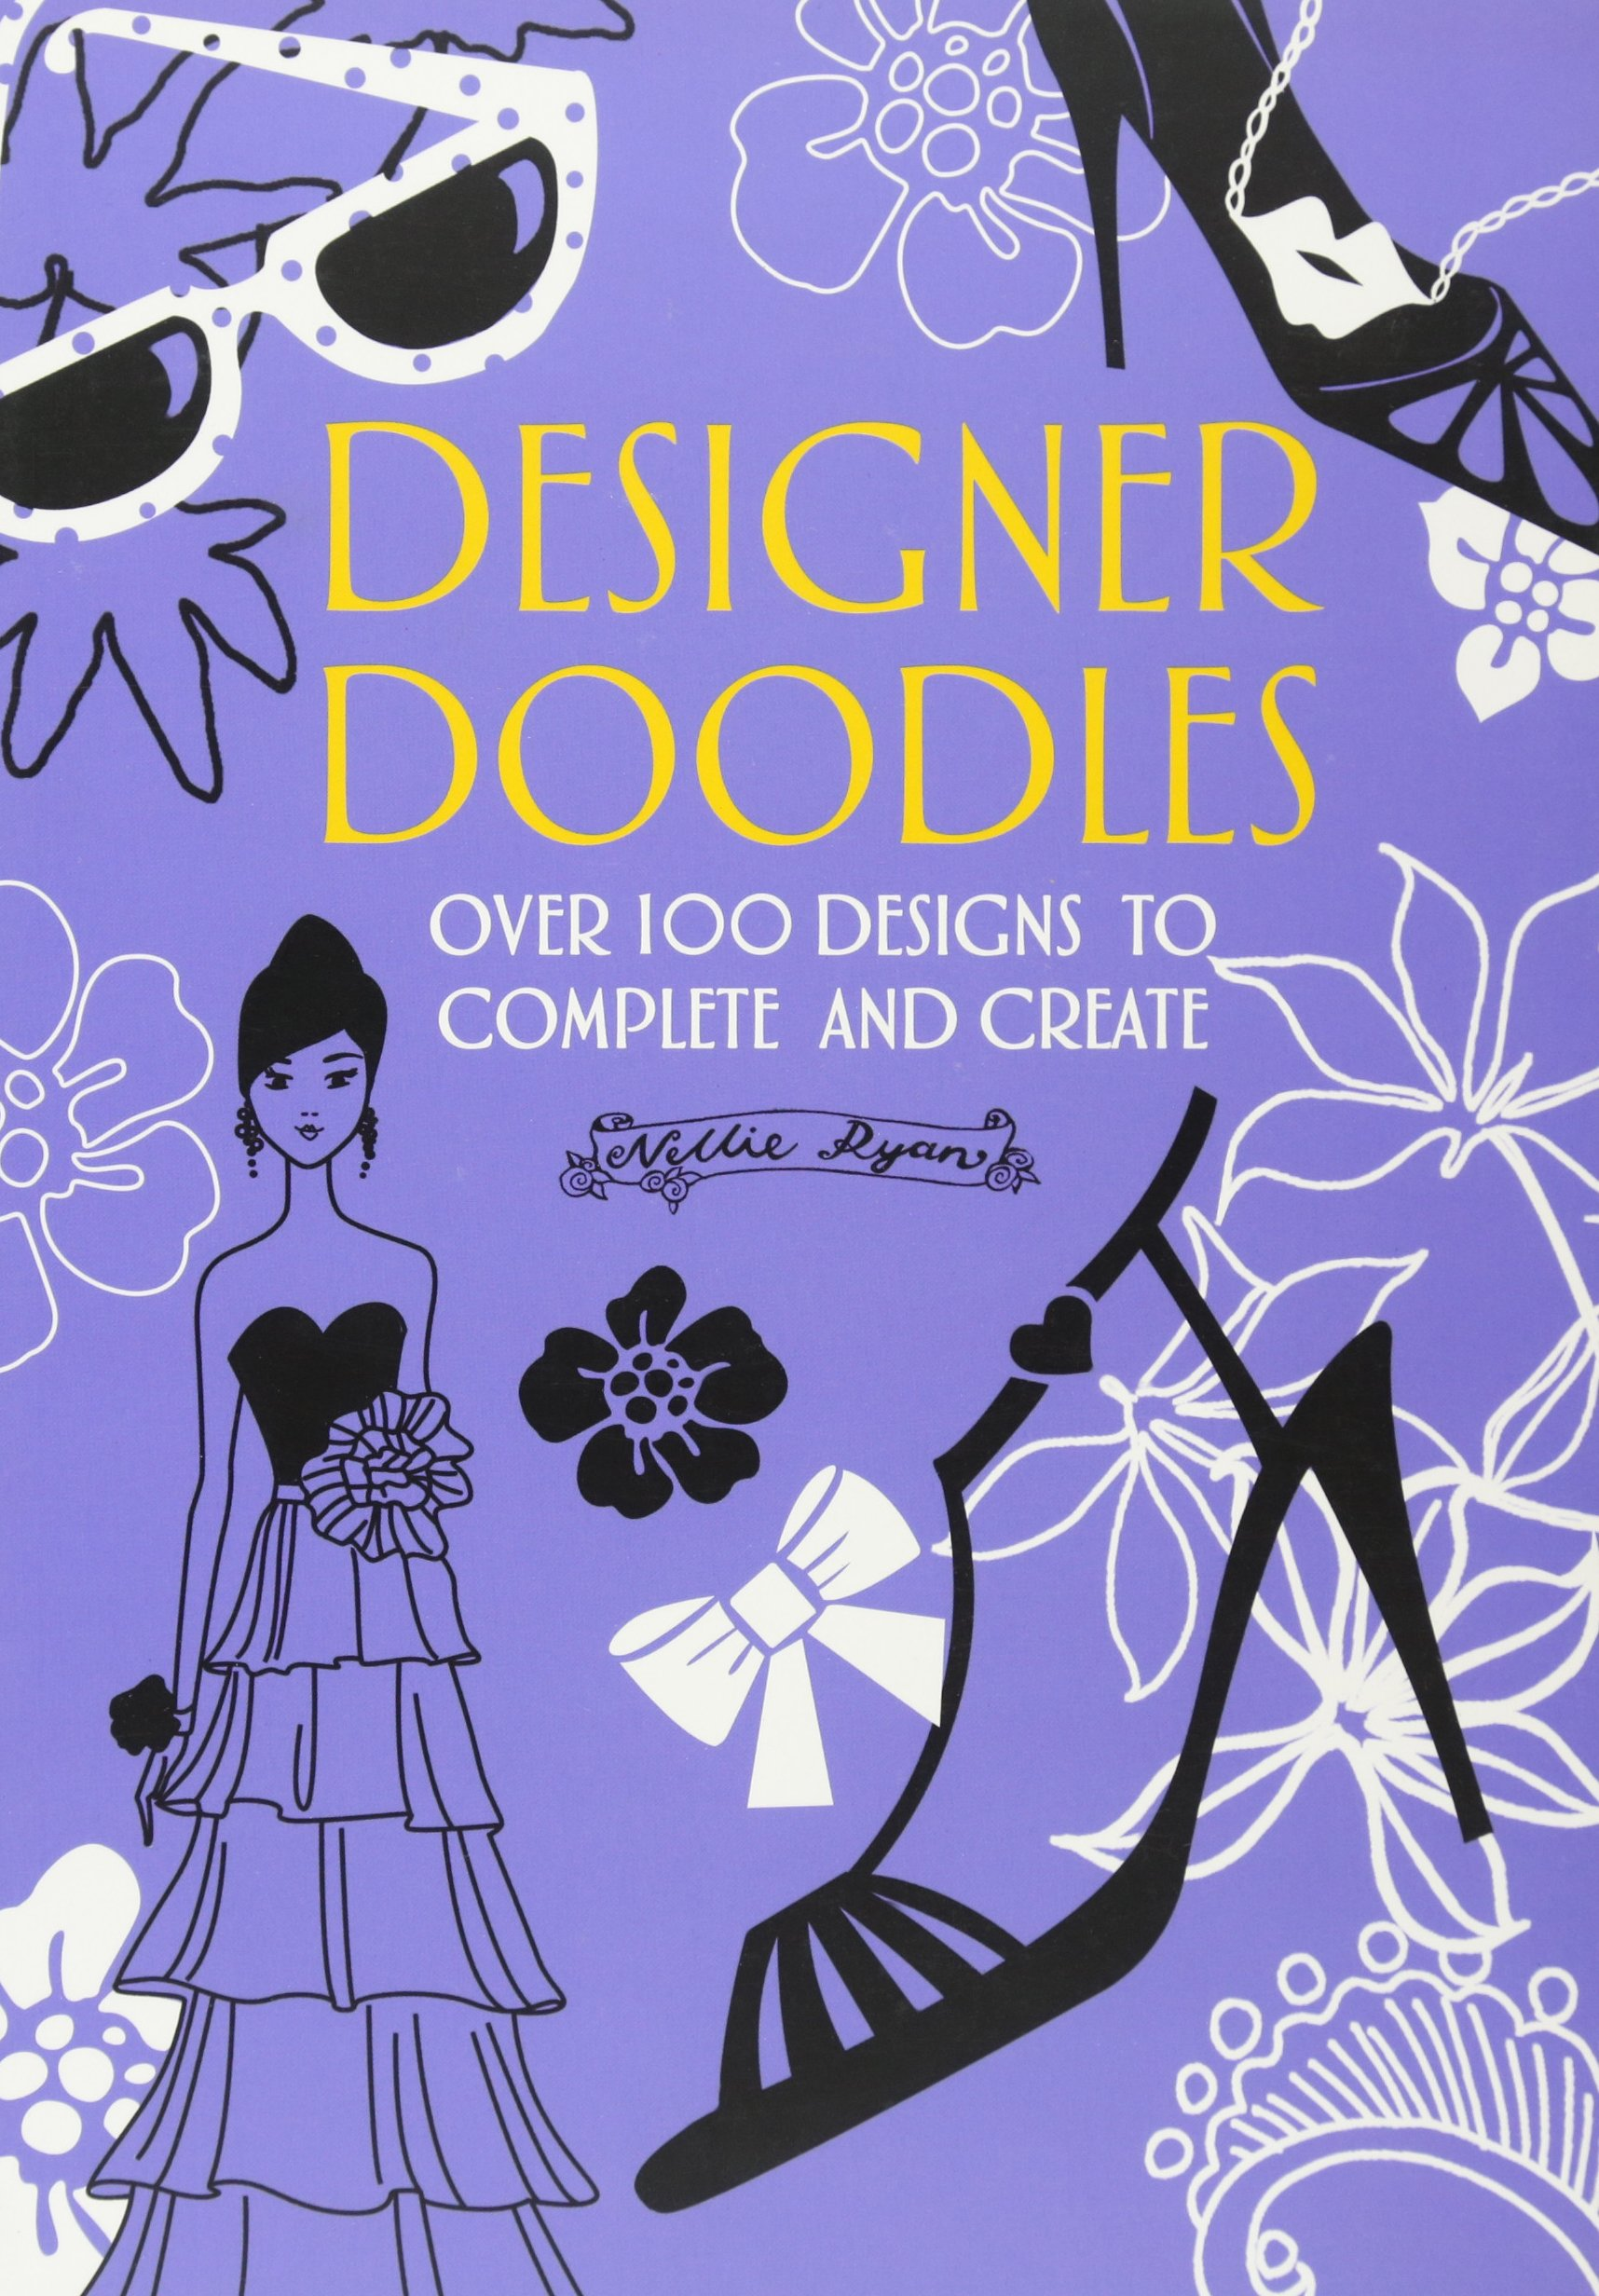 Amazon.com: Designer Doodles: Over 100 Designs to Complete and Create  (9780762437610): Nellie Ryan: Books